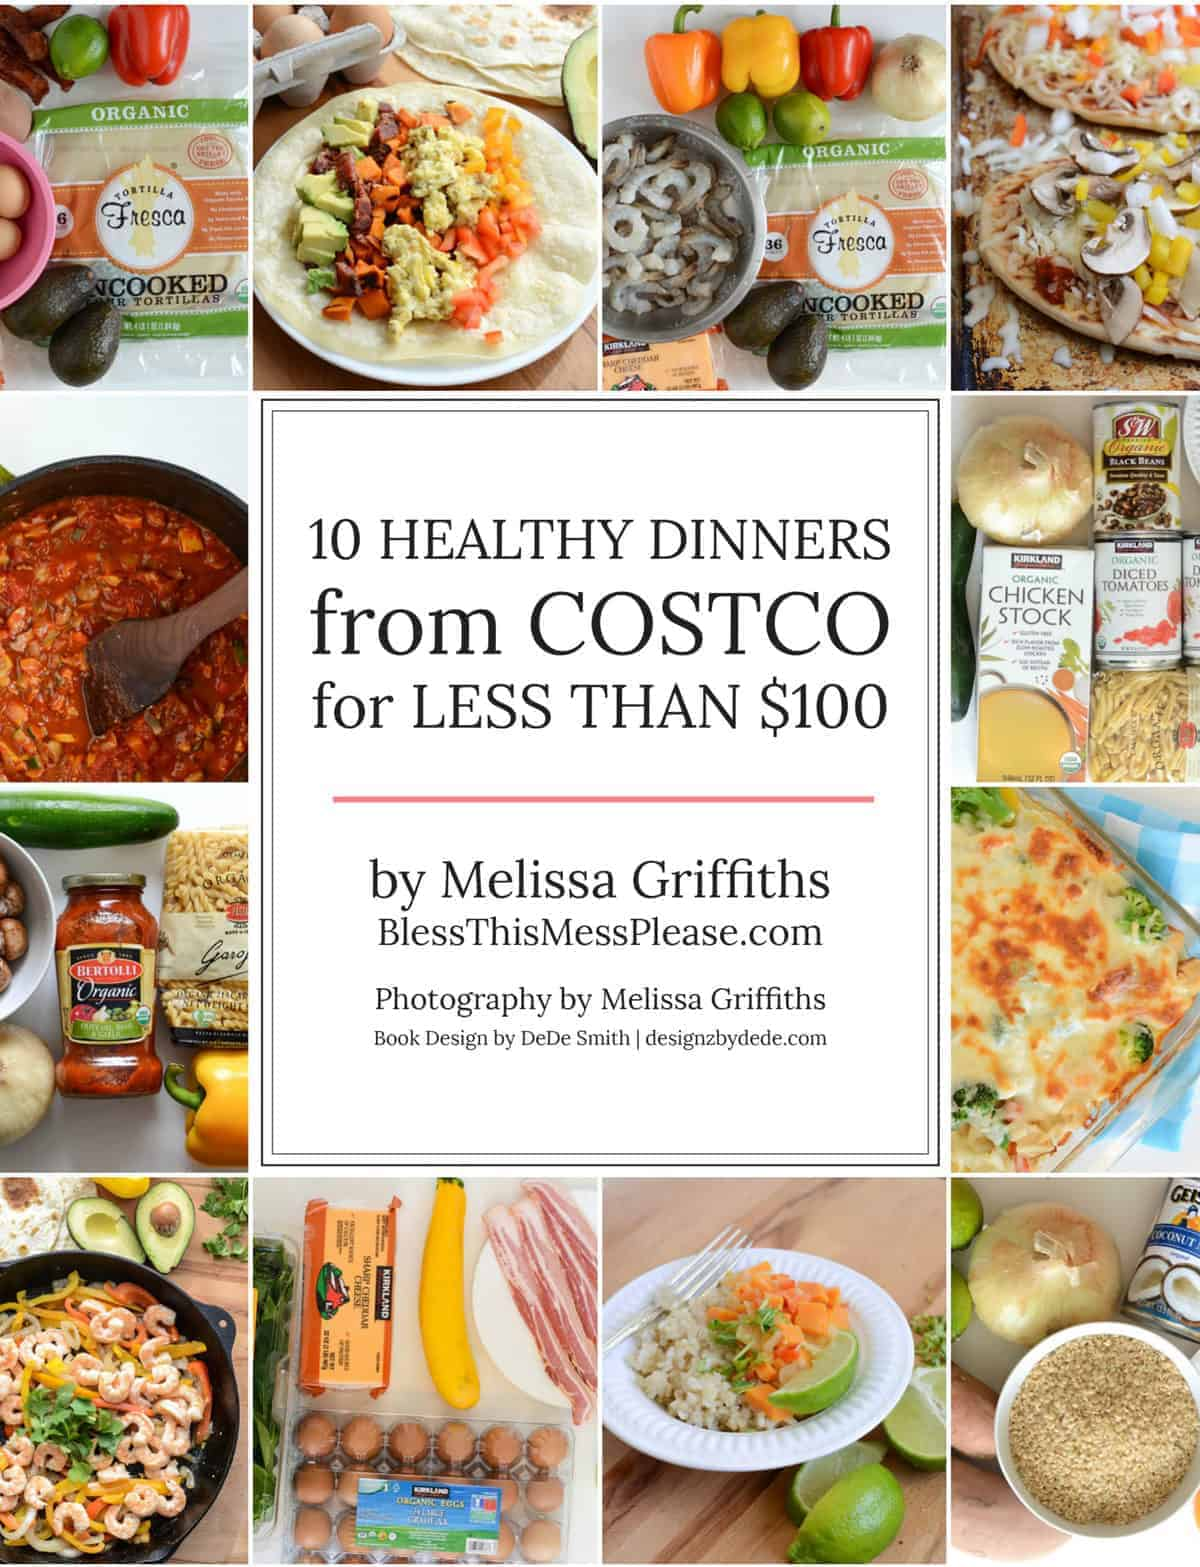 10 Healthy Dinners from Costco for Less Than $100